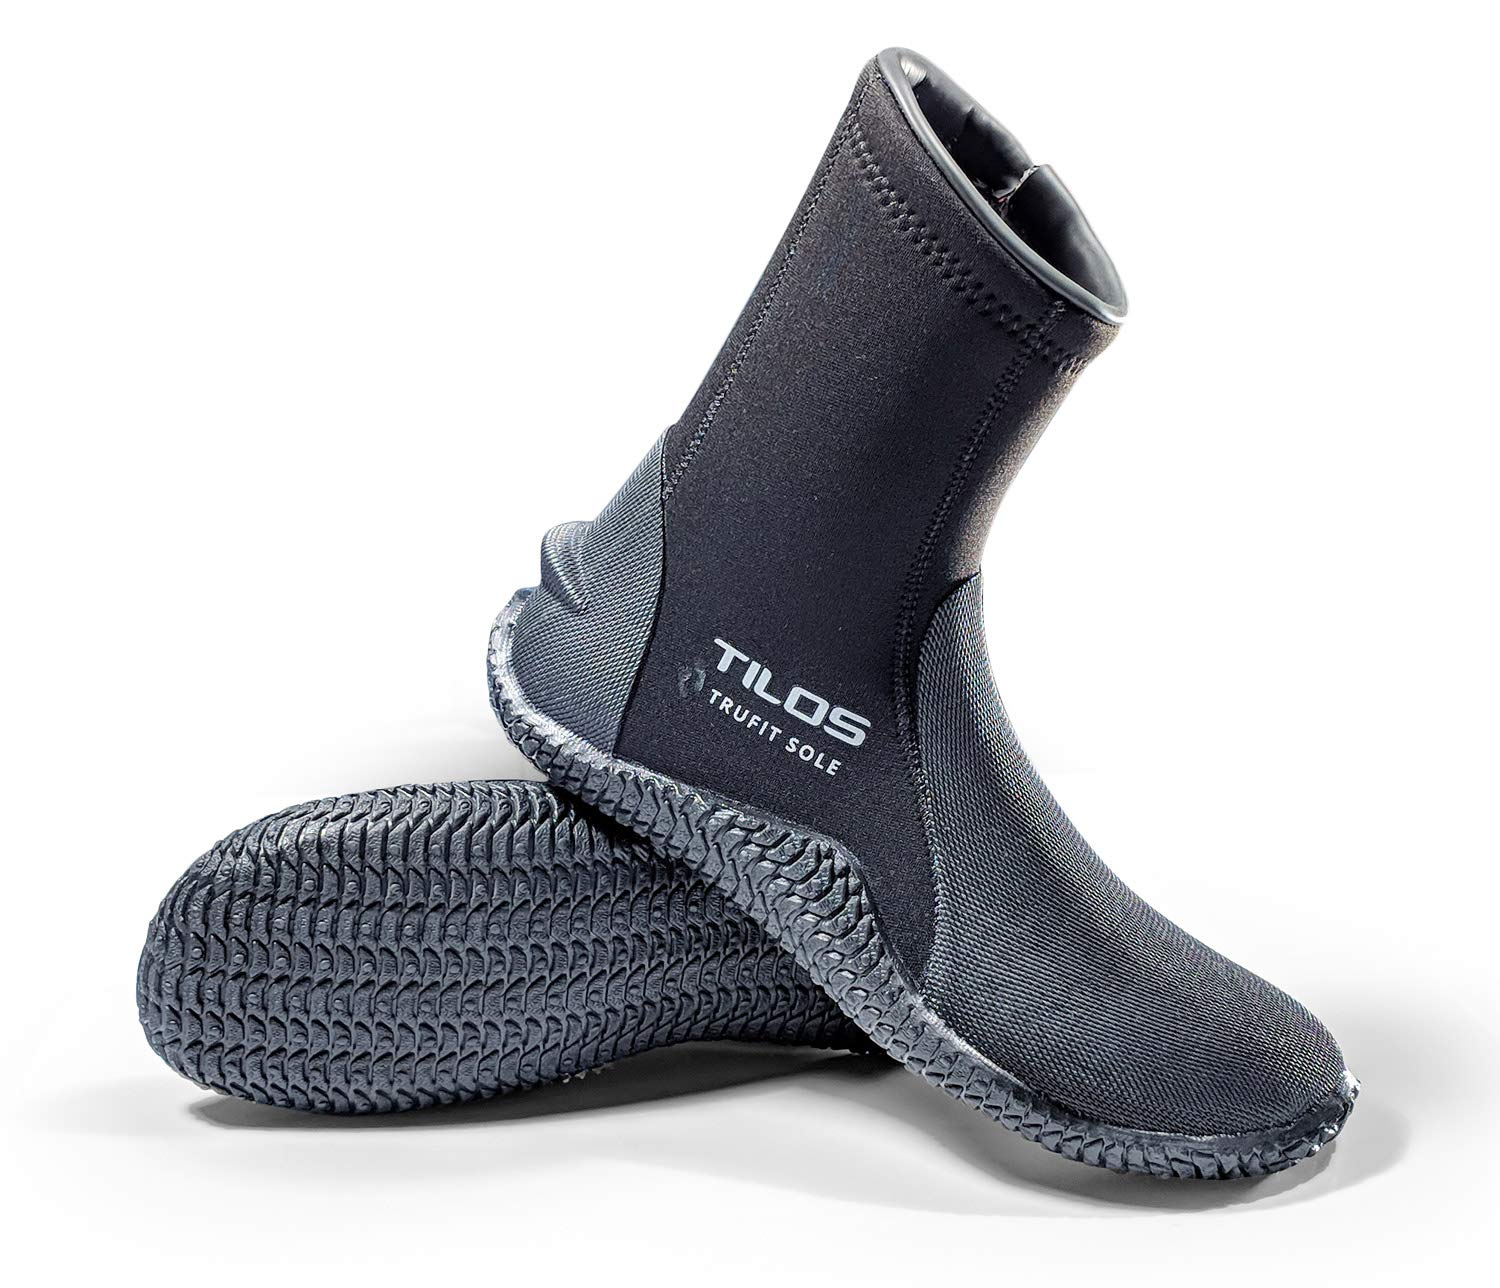 Tilos TruFit Dive Boots, First Truly Ergonomic Scuba Booties, Available in 3mm Short, 3mm Titanium, 5mm Titanium, 5mm Thermowall, 7mm Titanium (Men 9 / Women 10, 5mm Tall Thermoflare Boot) Black by Tilos